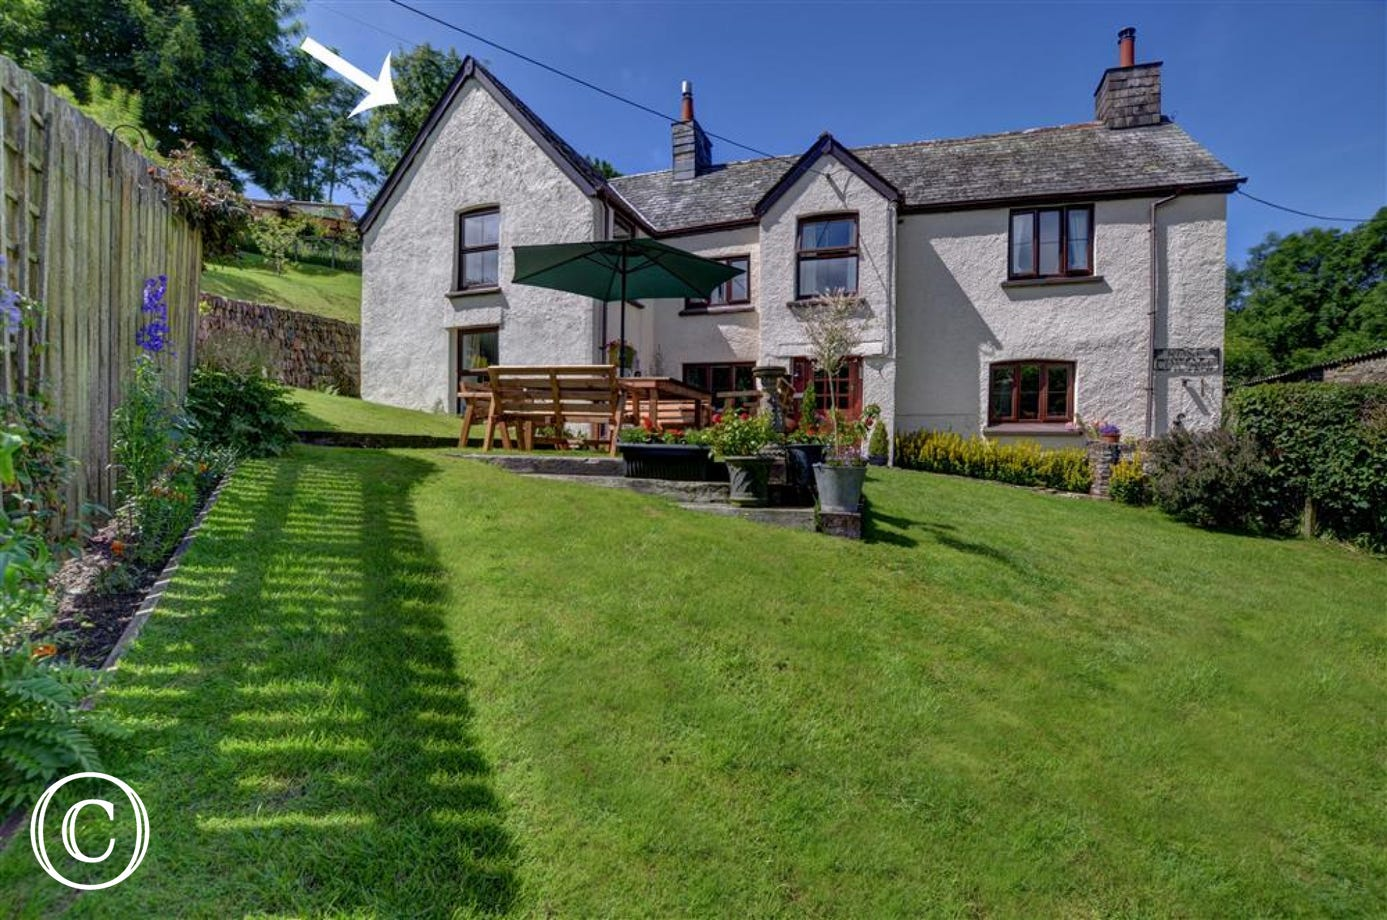 Situated in a most peaceful location within Exmoor National Park and close to spectacular coast and Moorland scenery